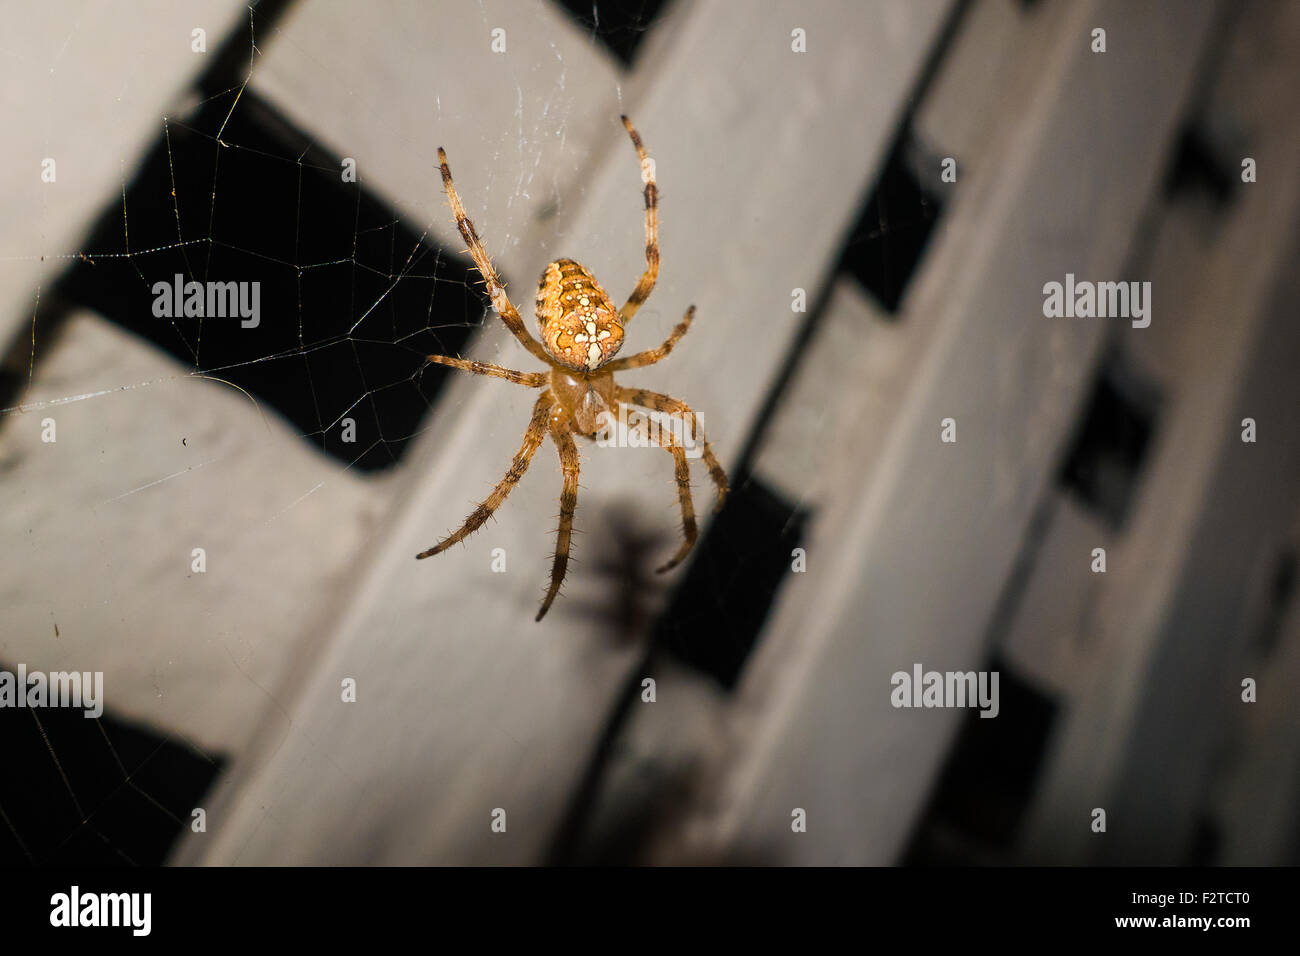 spider on web over wooden lattice - Stock Image